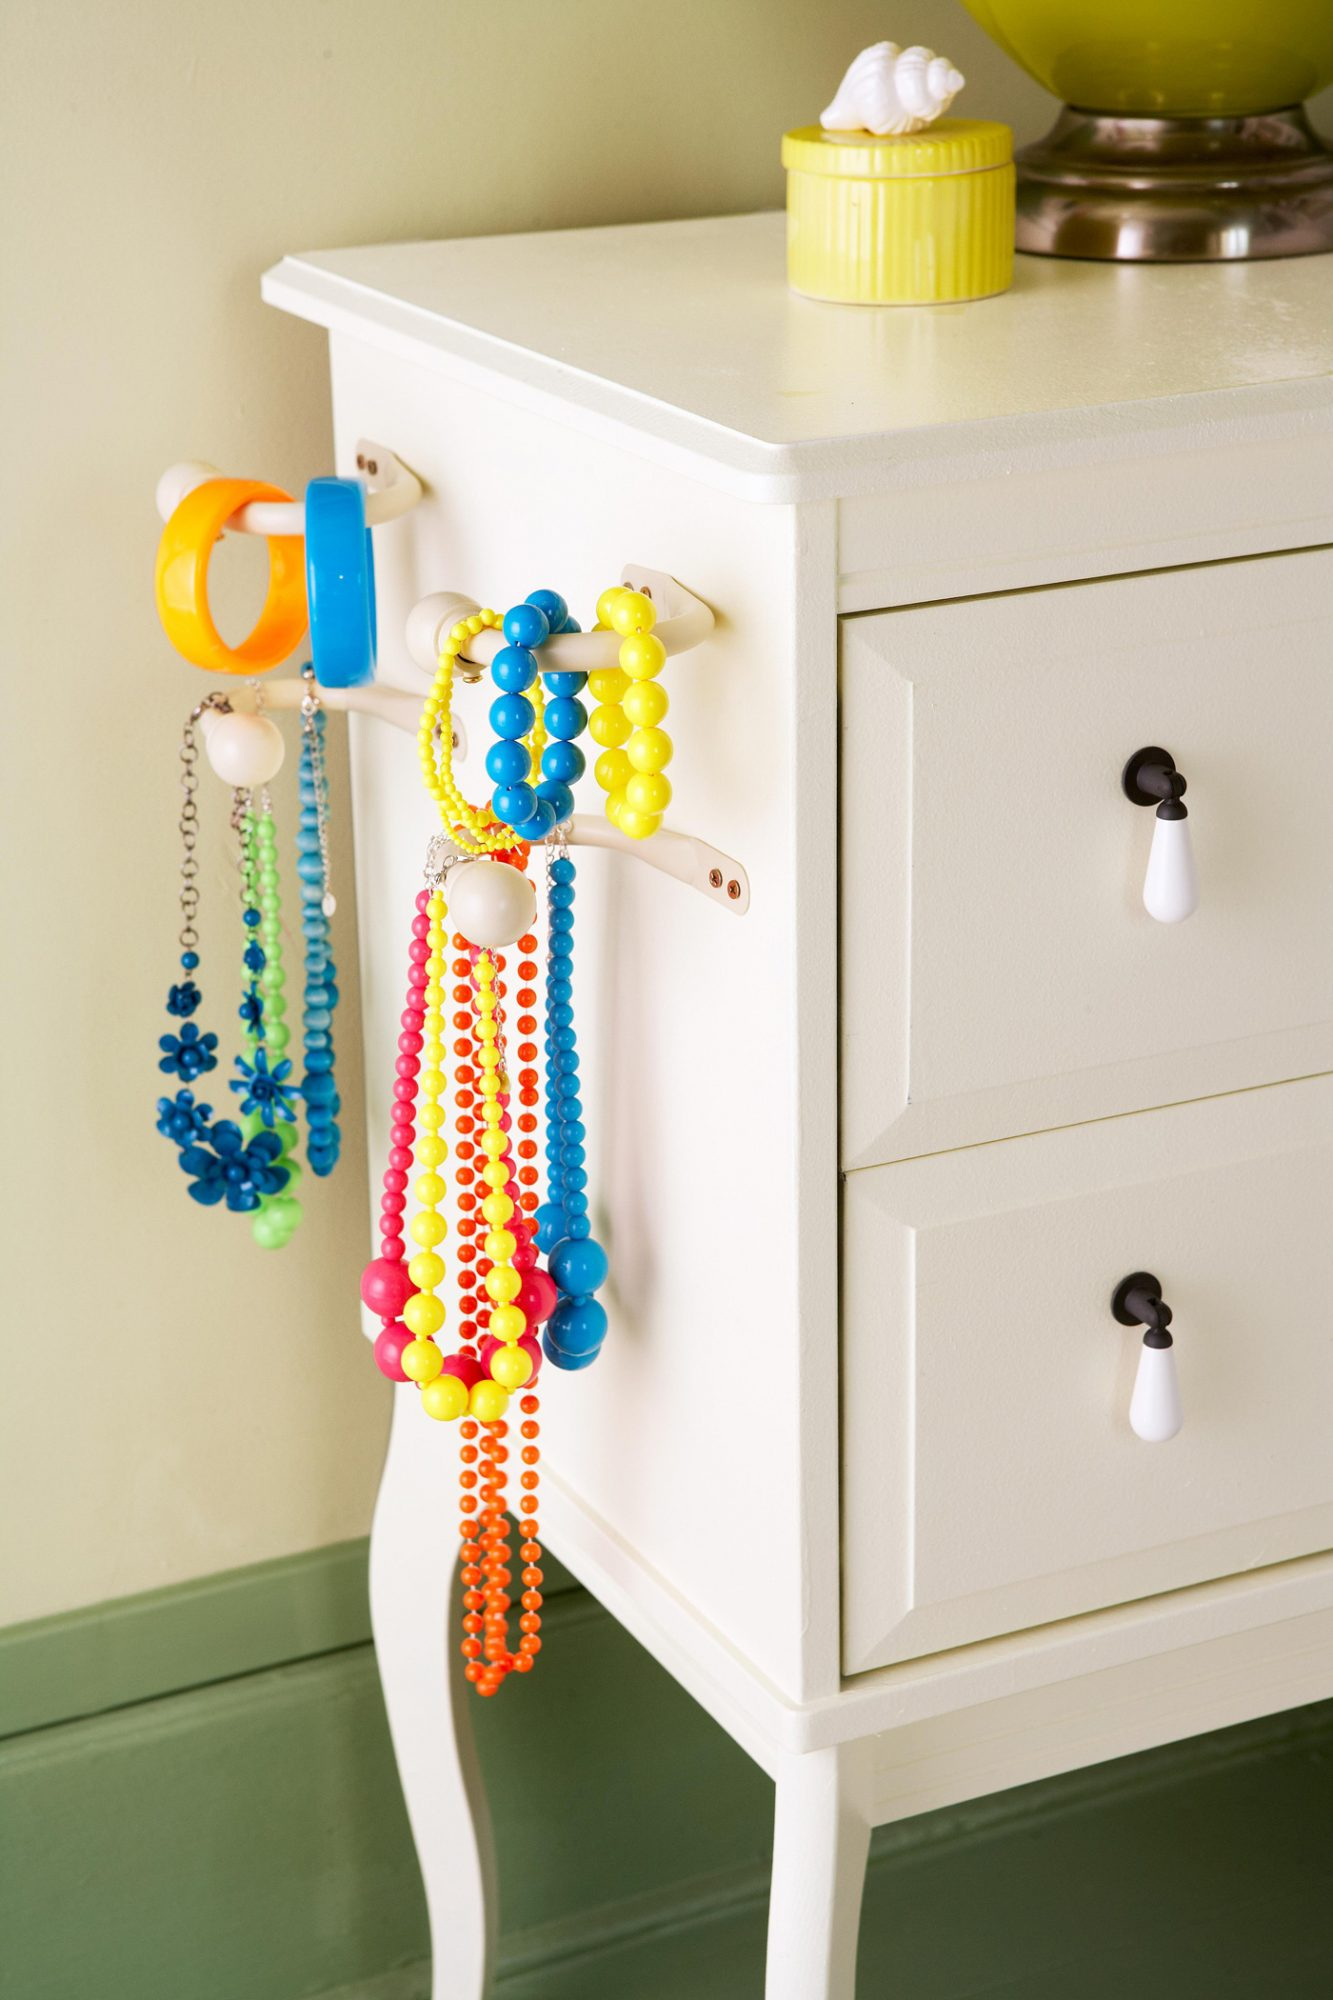 necklaces on large white hooks mounted on dresser side